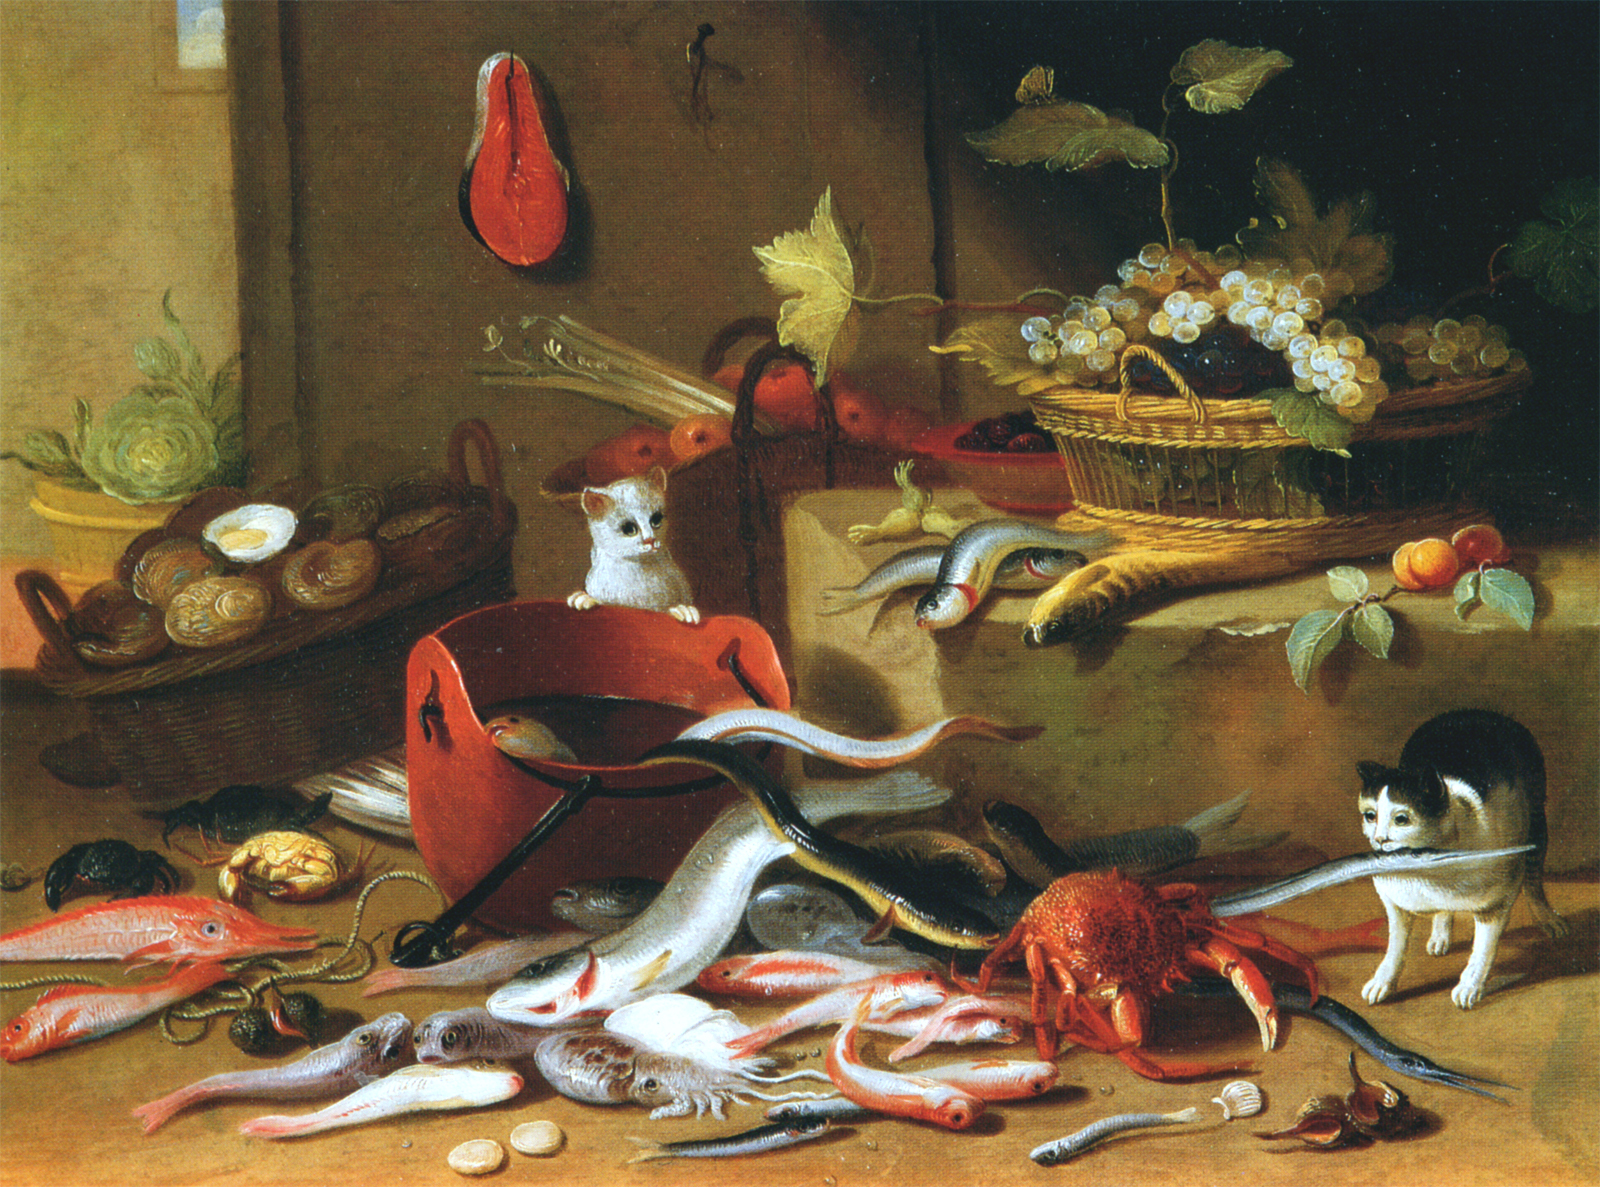 File:Studio of Jan van Kessel I - Cats with still life.jpg ...